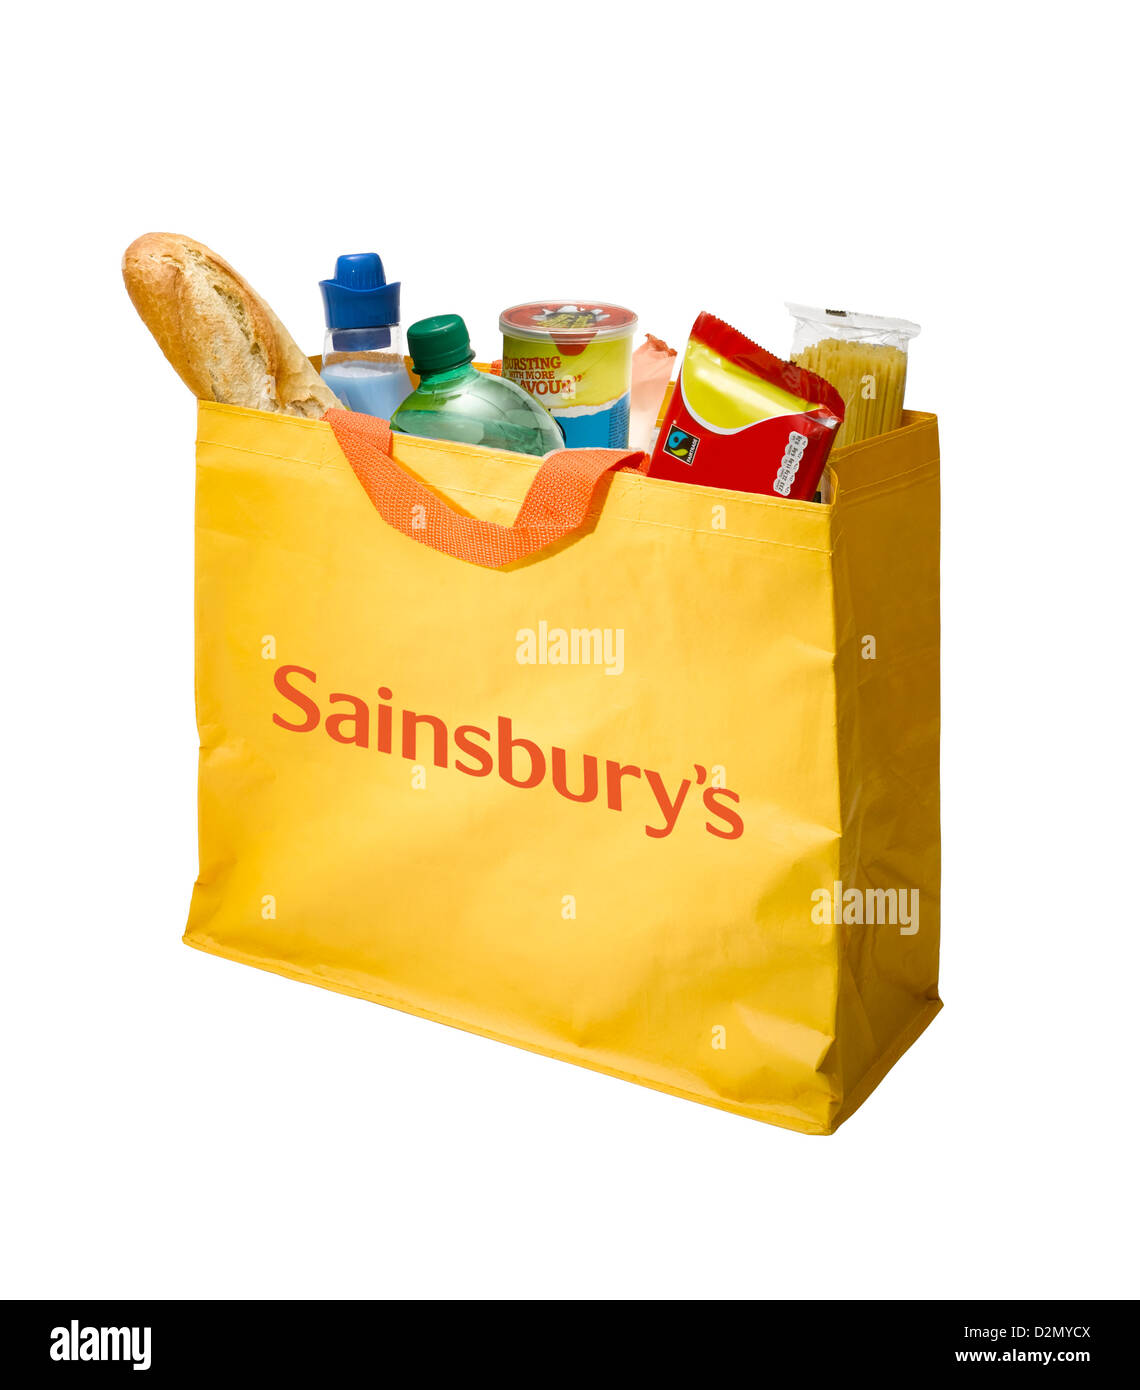 A mustard yellow Sainsbury's shopping bag on a white background - Stock Image